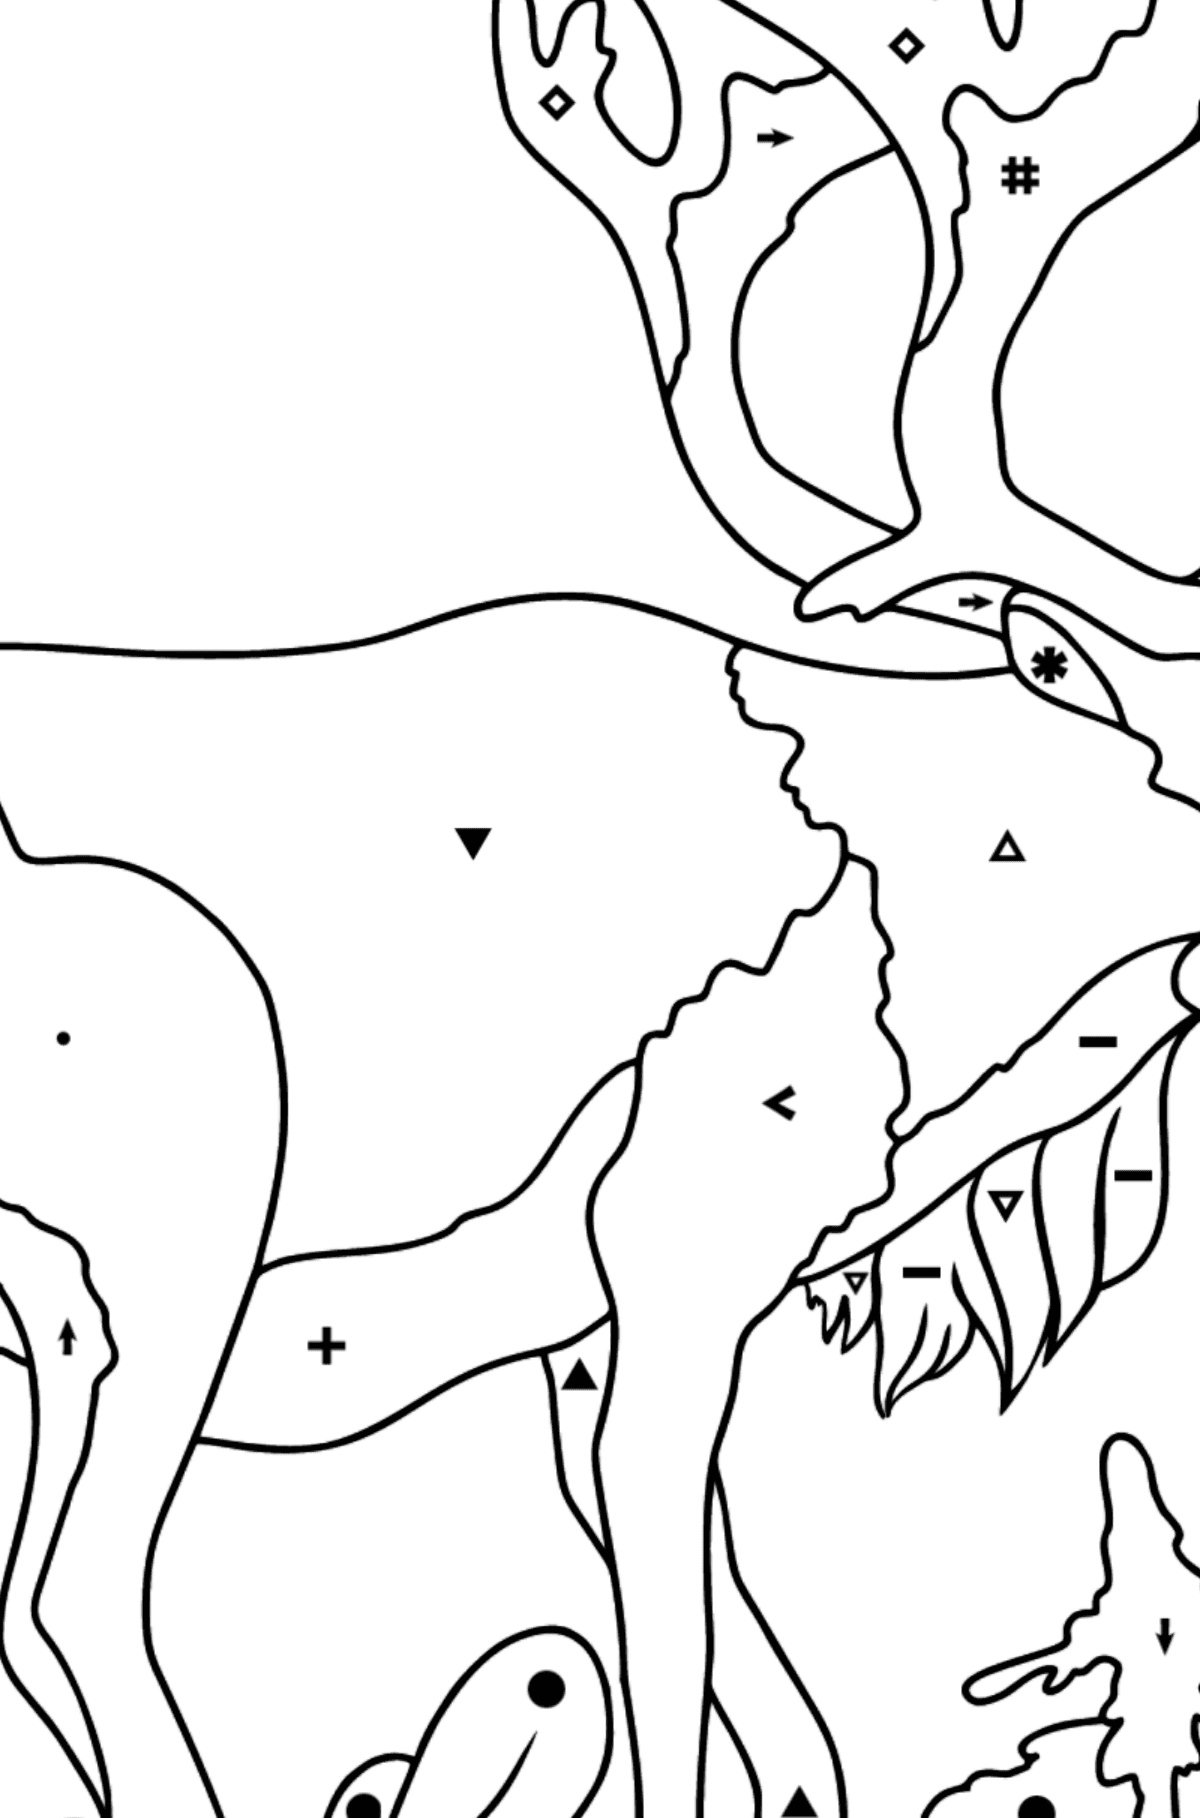 Coloring Page - A Noble Deer - Coloring by Symbols for Kids